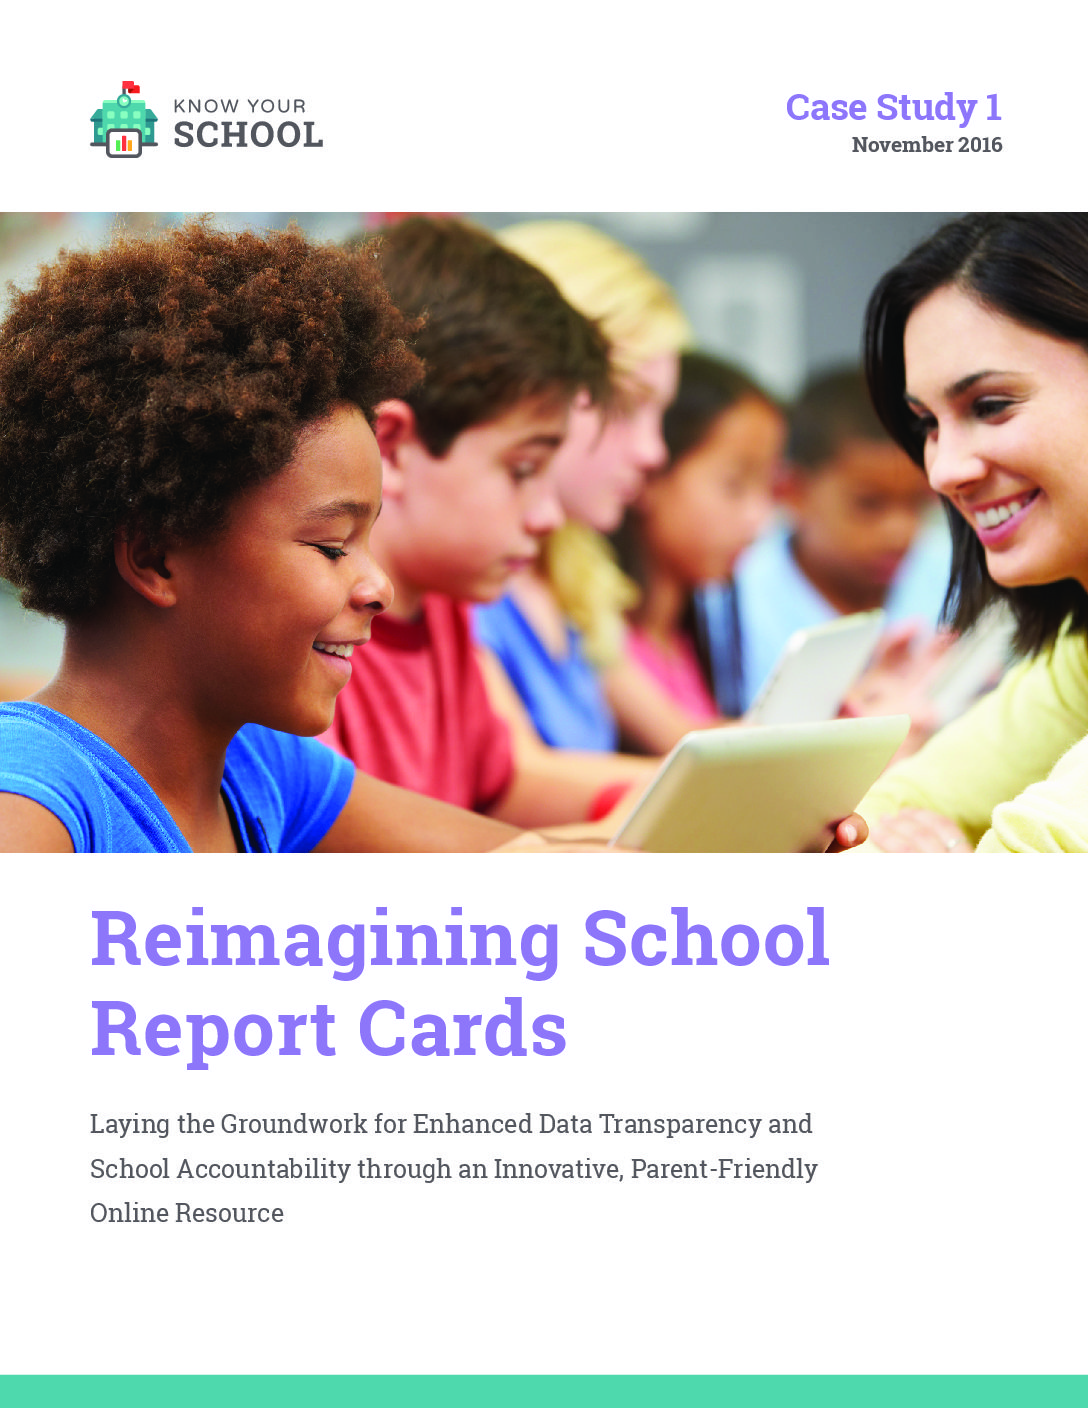 Know Your School &#8211; Reimagining School Report Cards &#8211; November 2016>									 									</a> 									<a href=